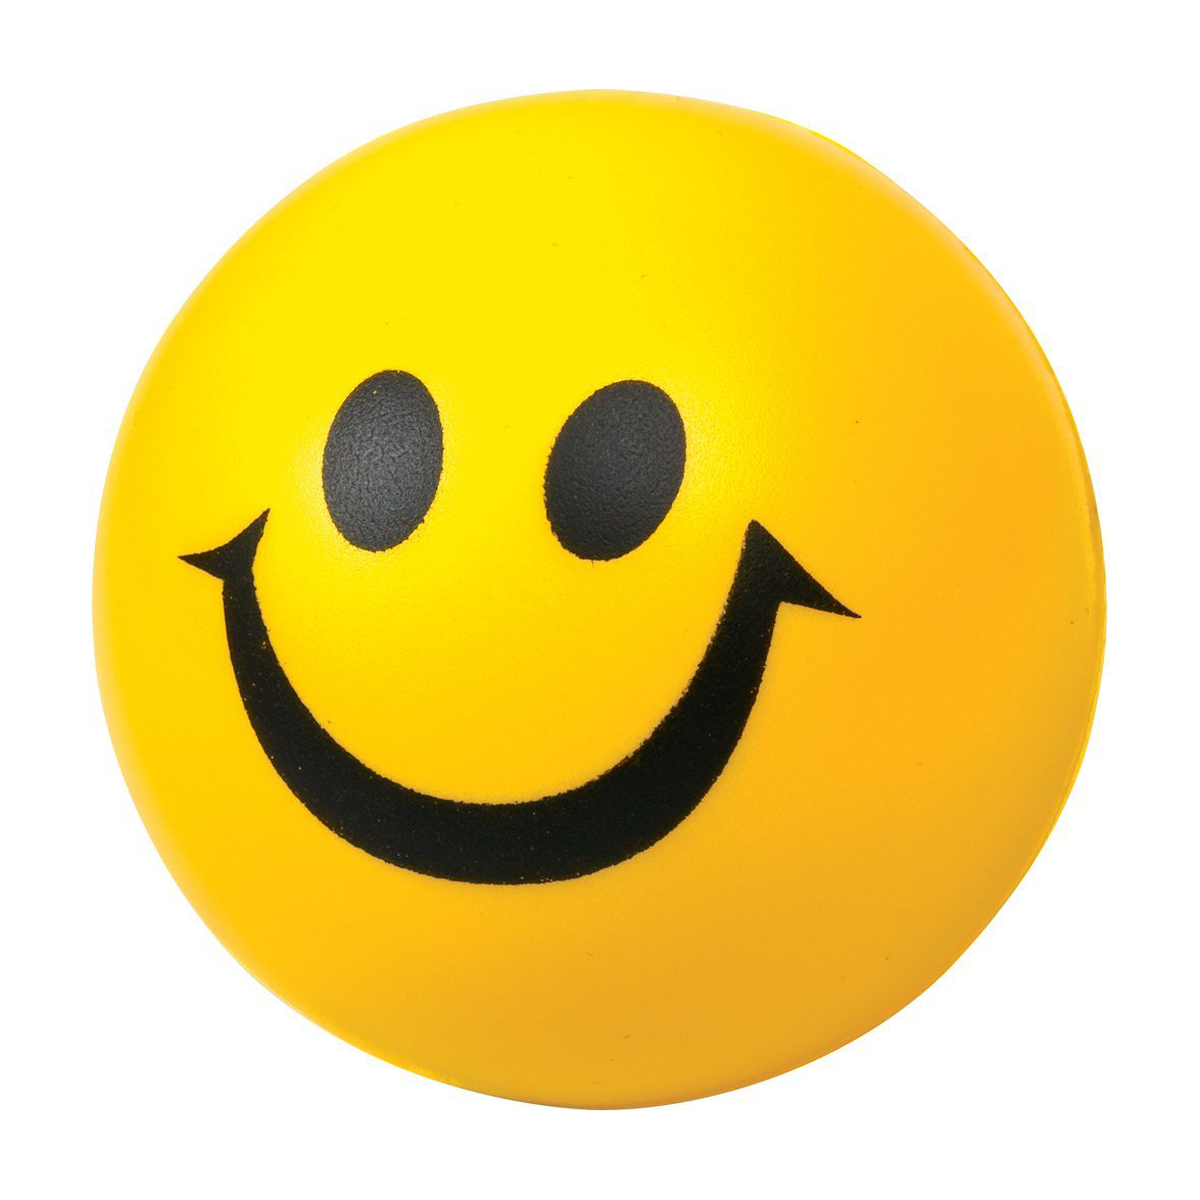 1200x1200 Smiley Face Stress Ball Mines Press